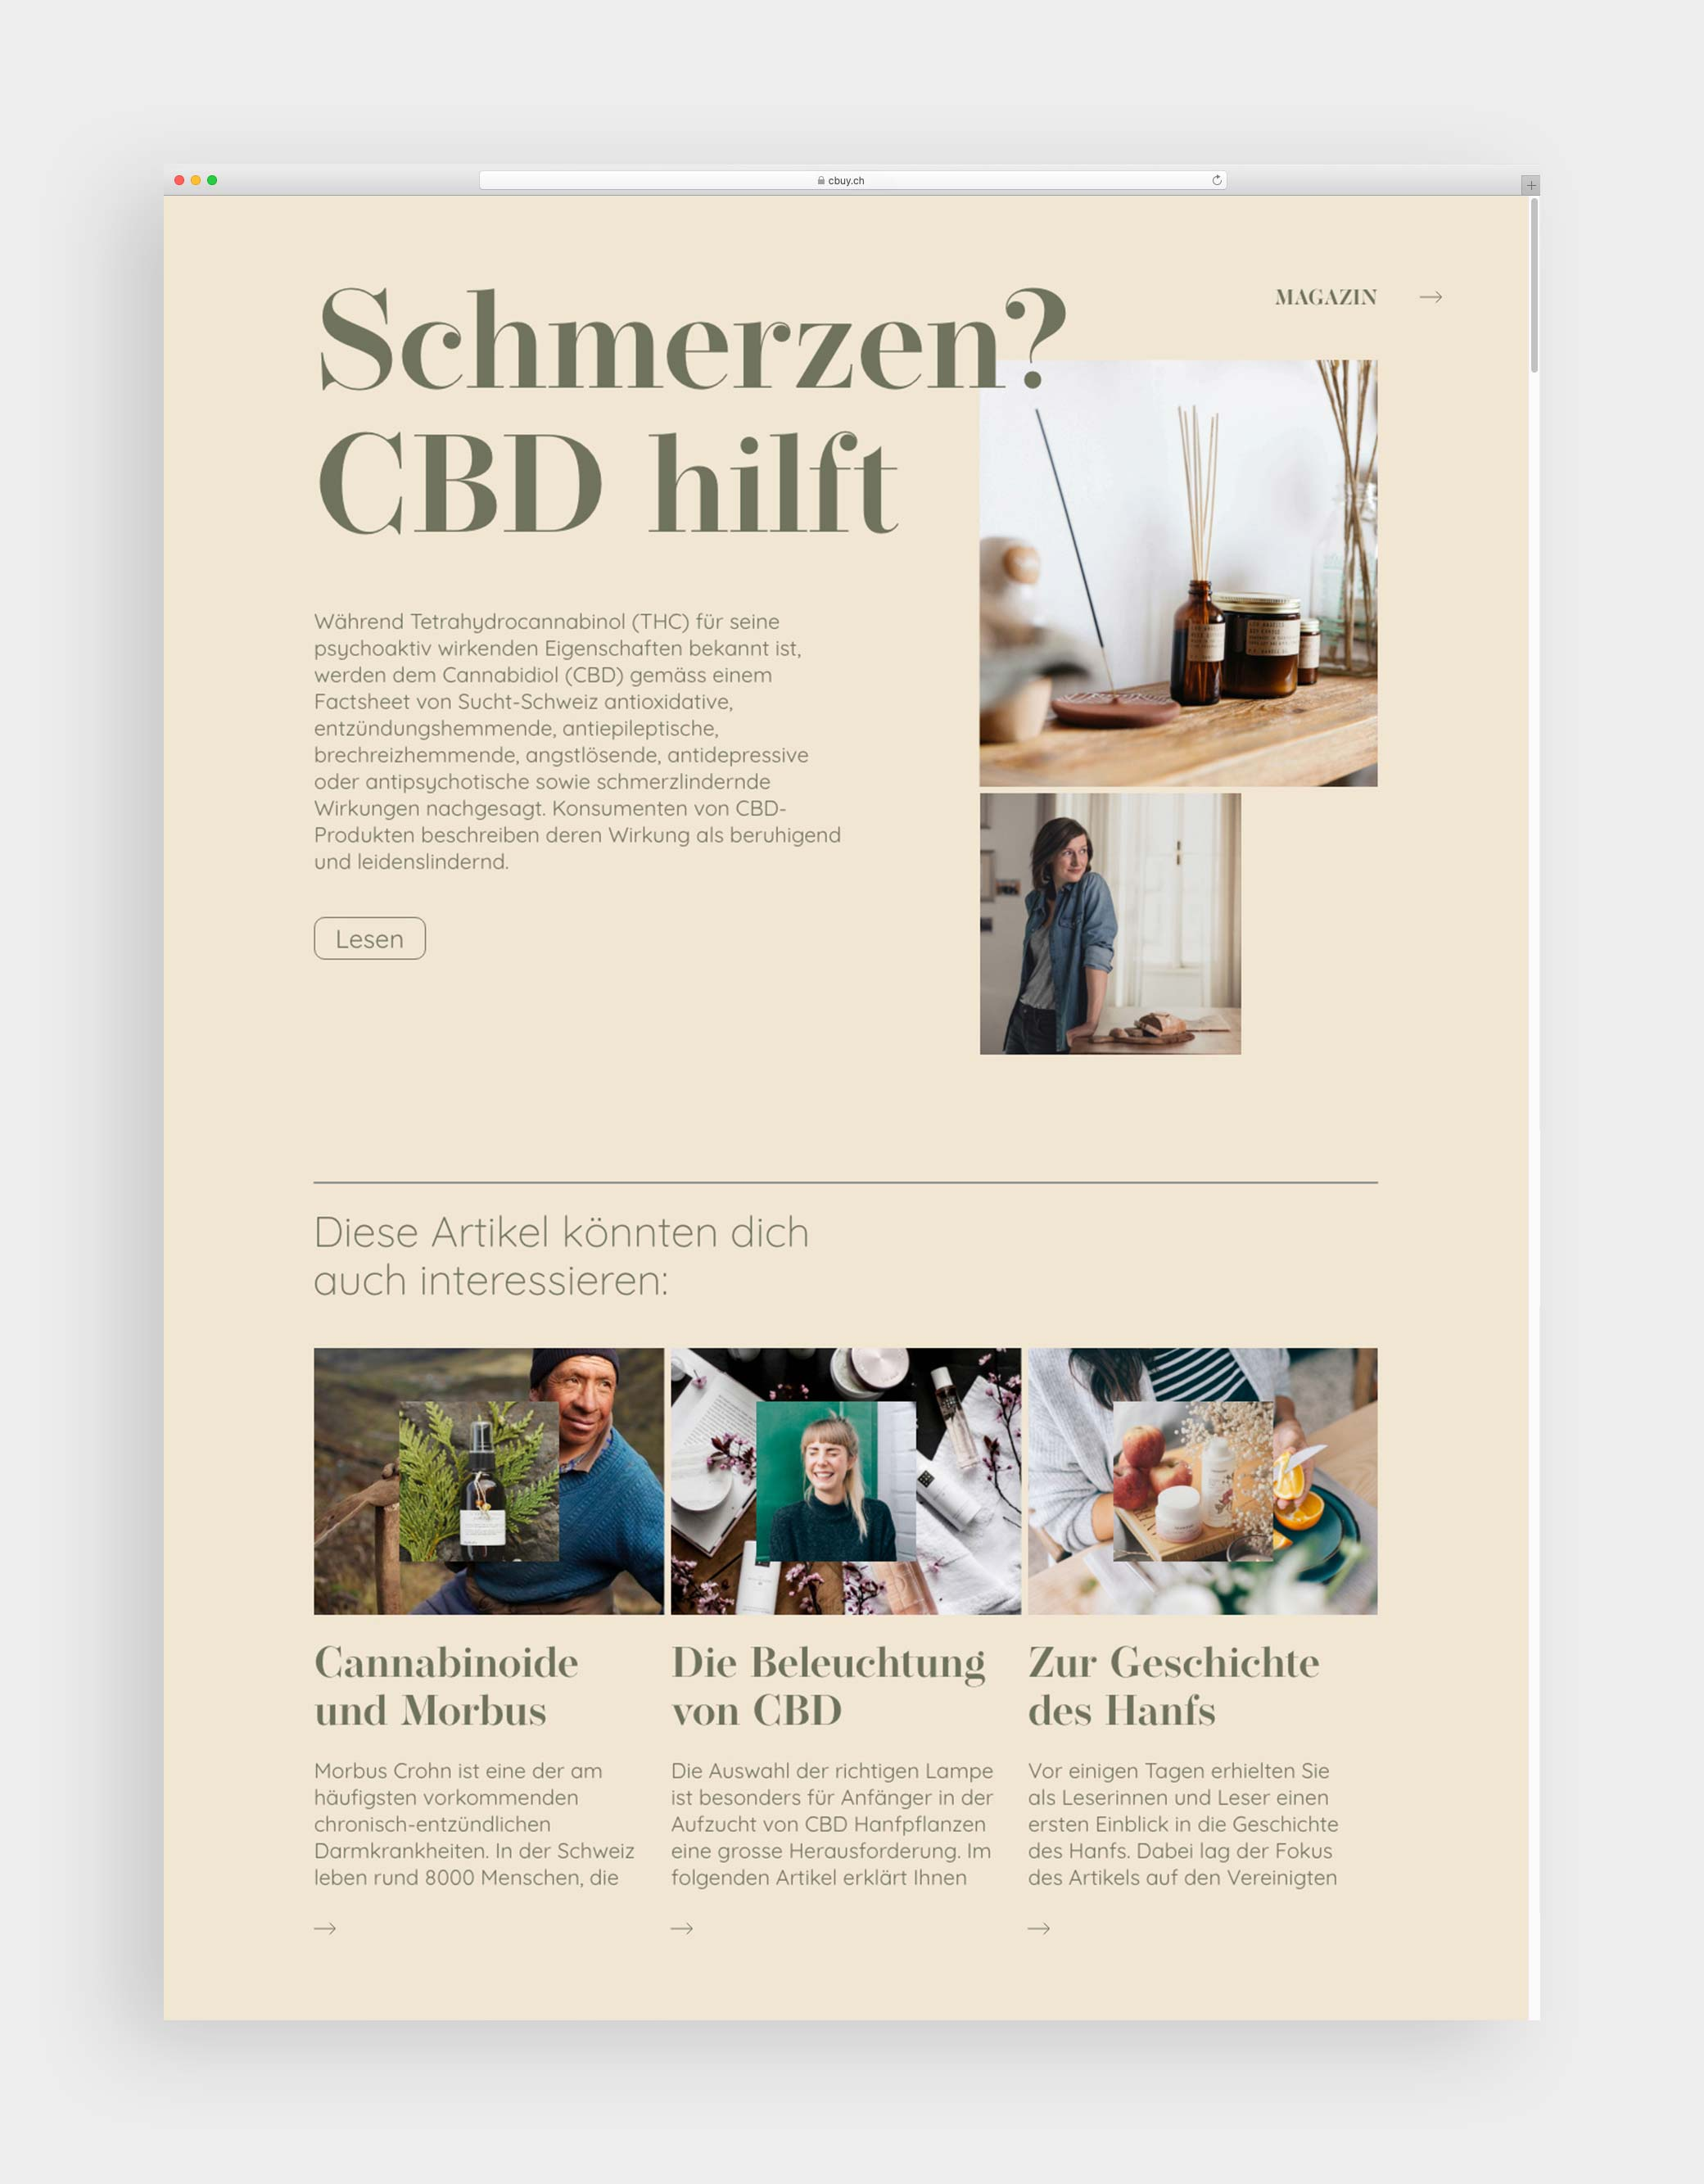 cbuy_website_magazin_mockup